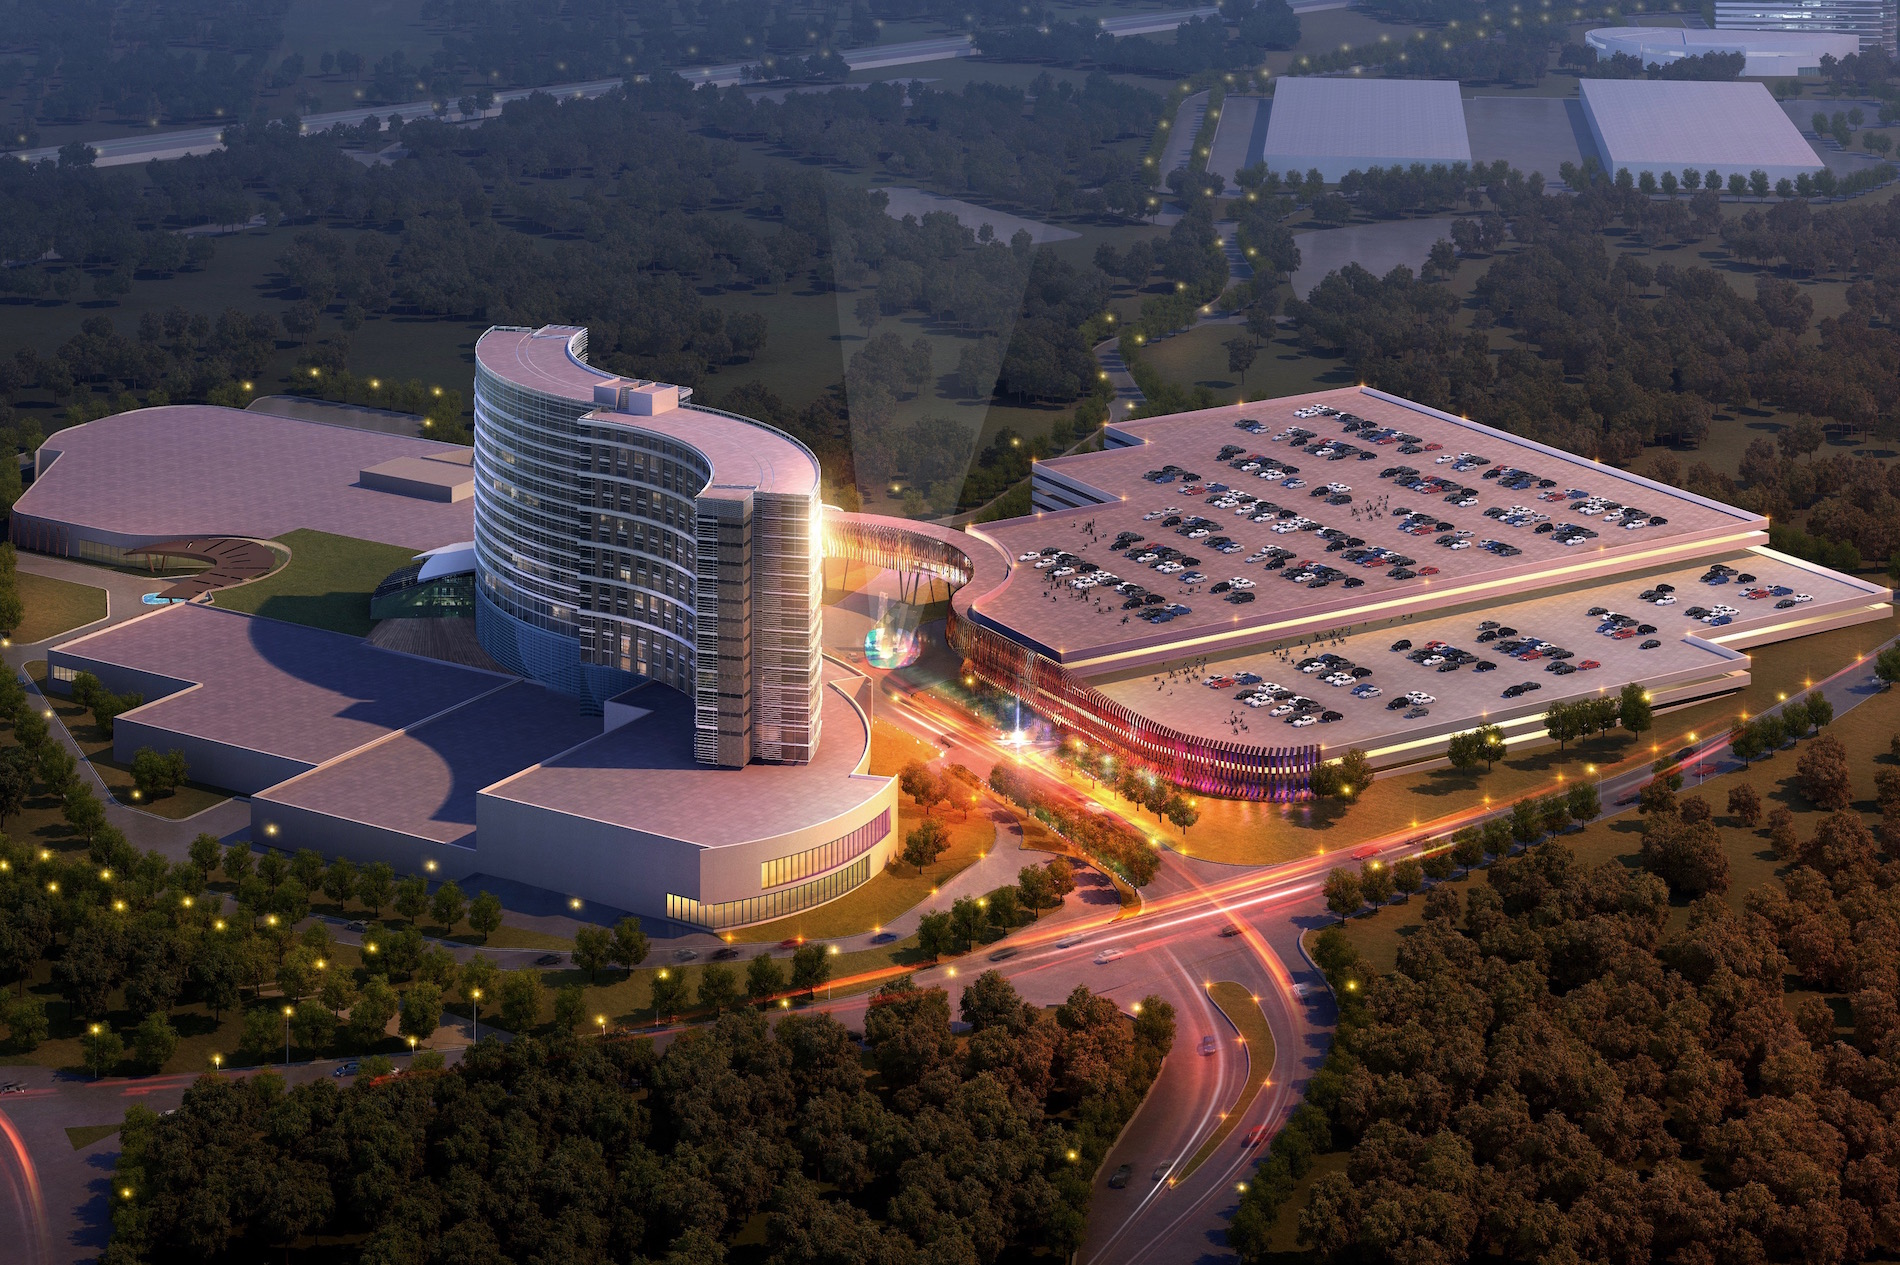 Non-Indian billionaire slams Mashpee Wampanoag Tribe casino